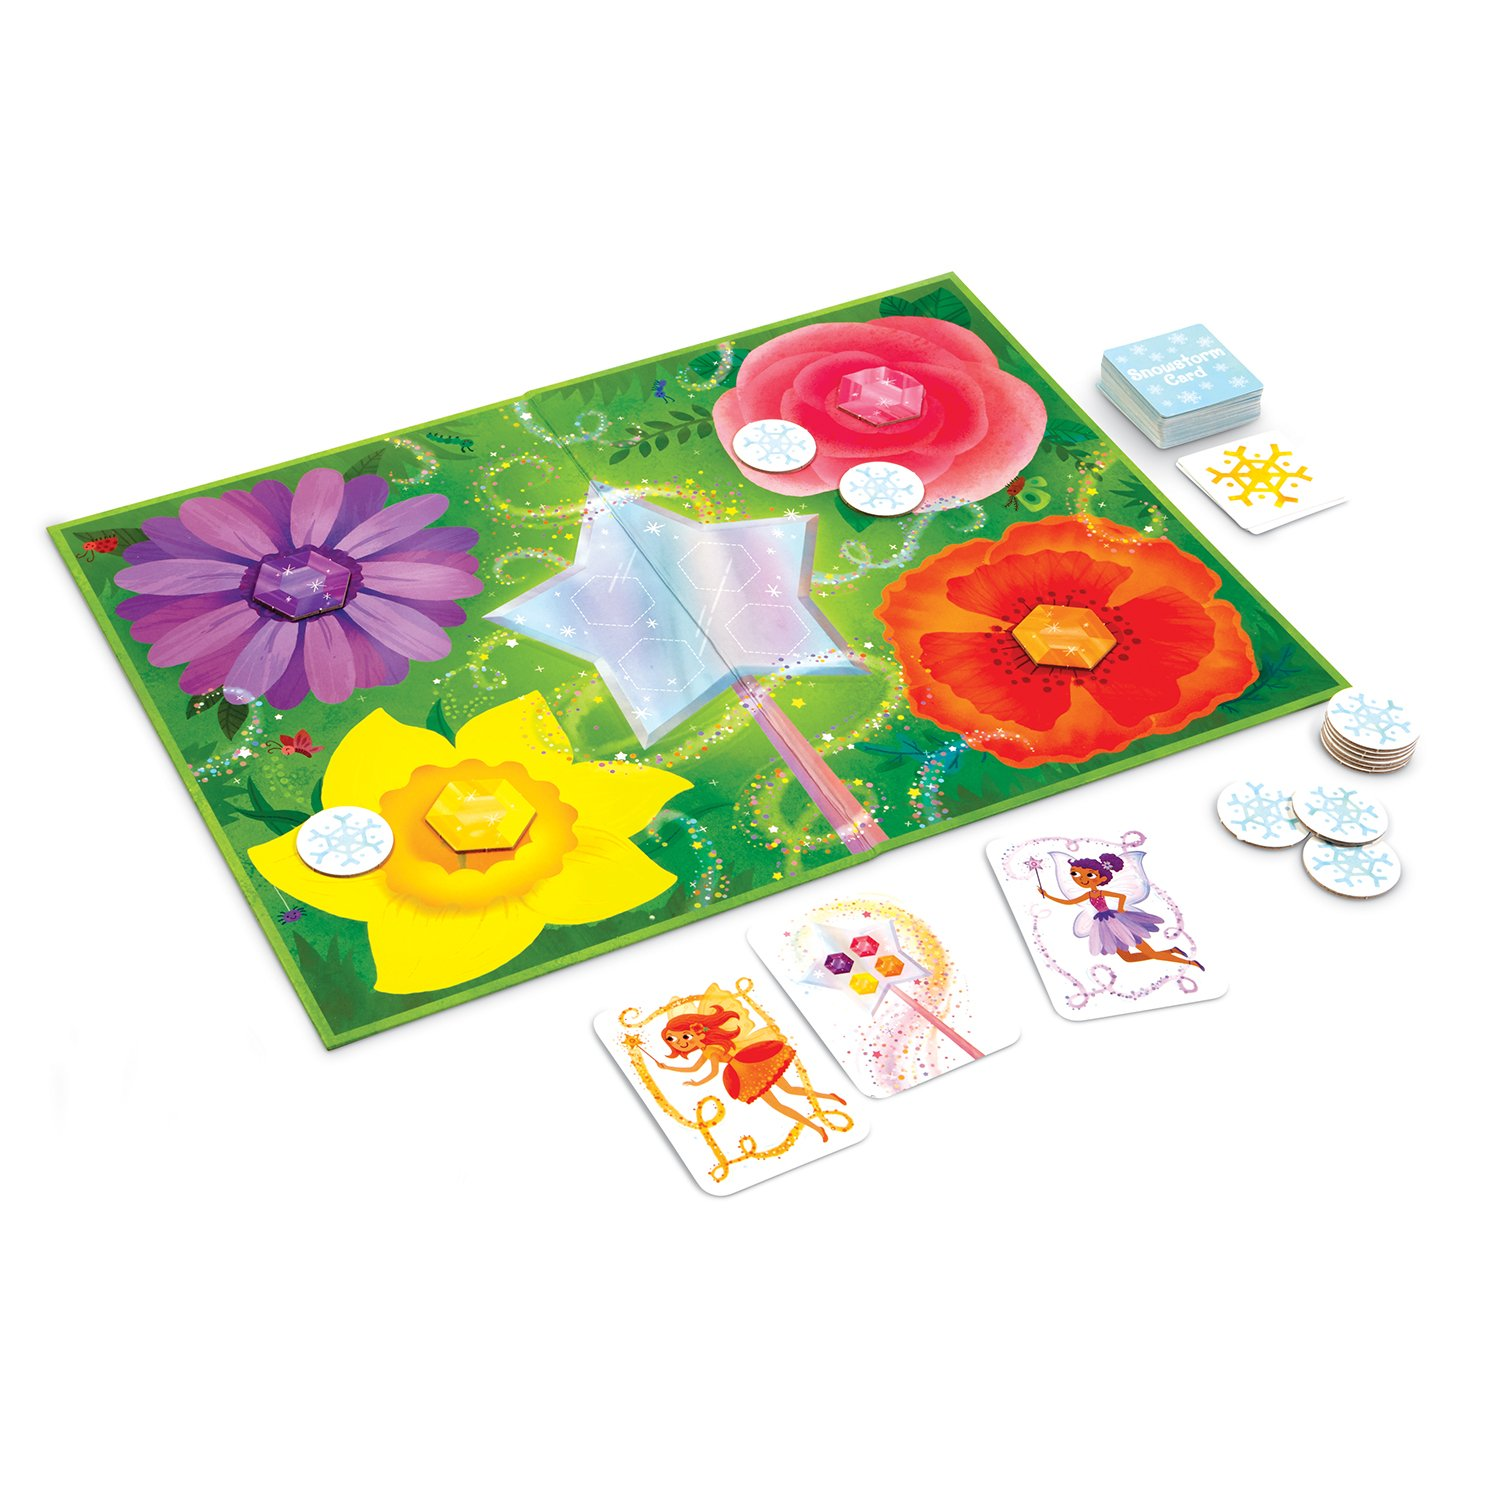 Peaceable Kingdom The Fairy Game Award Winning Cooperative Game of Logic and Luck for Kids by Peaceable Kingdom (Image #2)